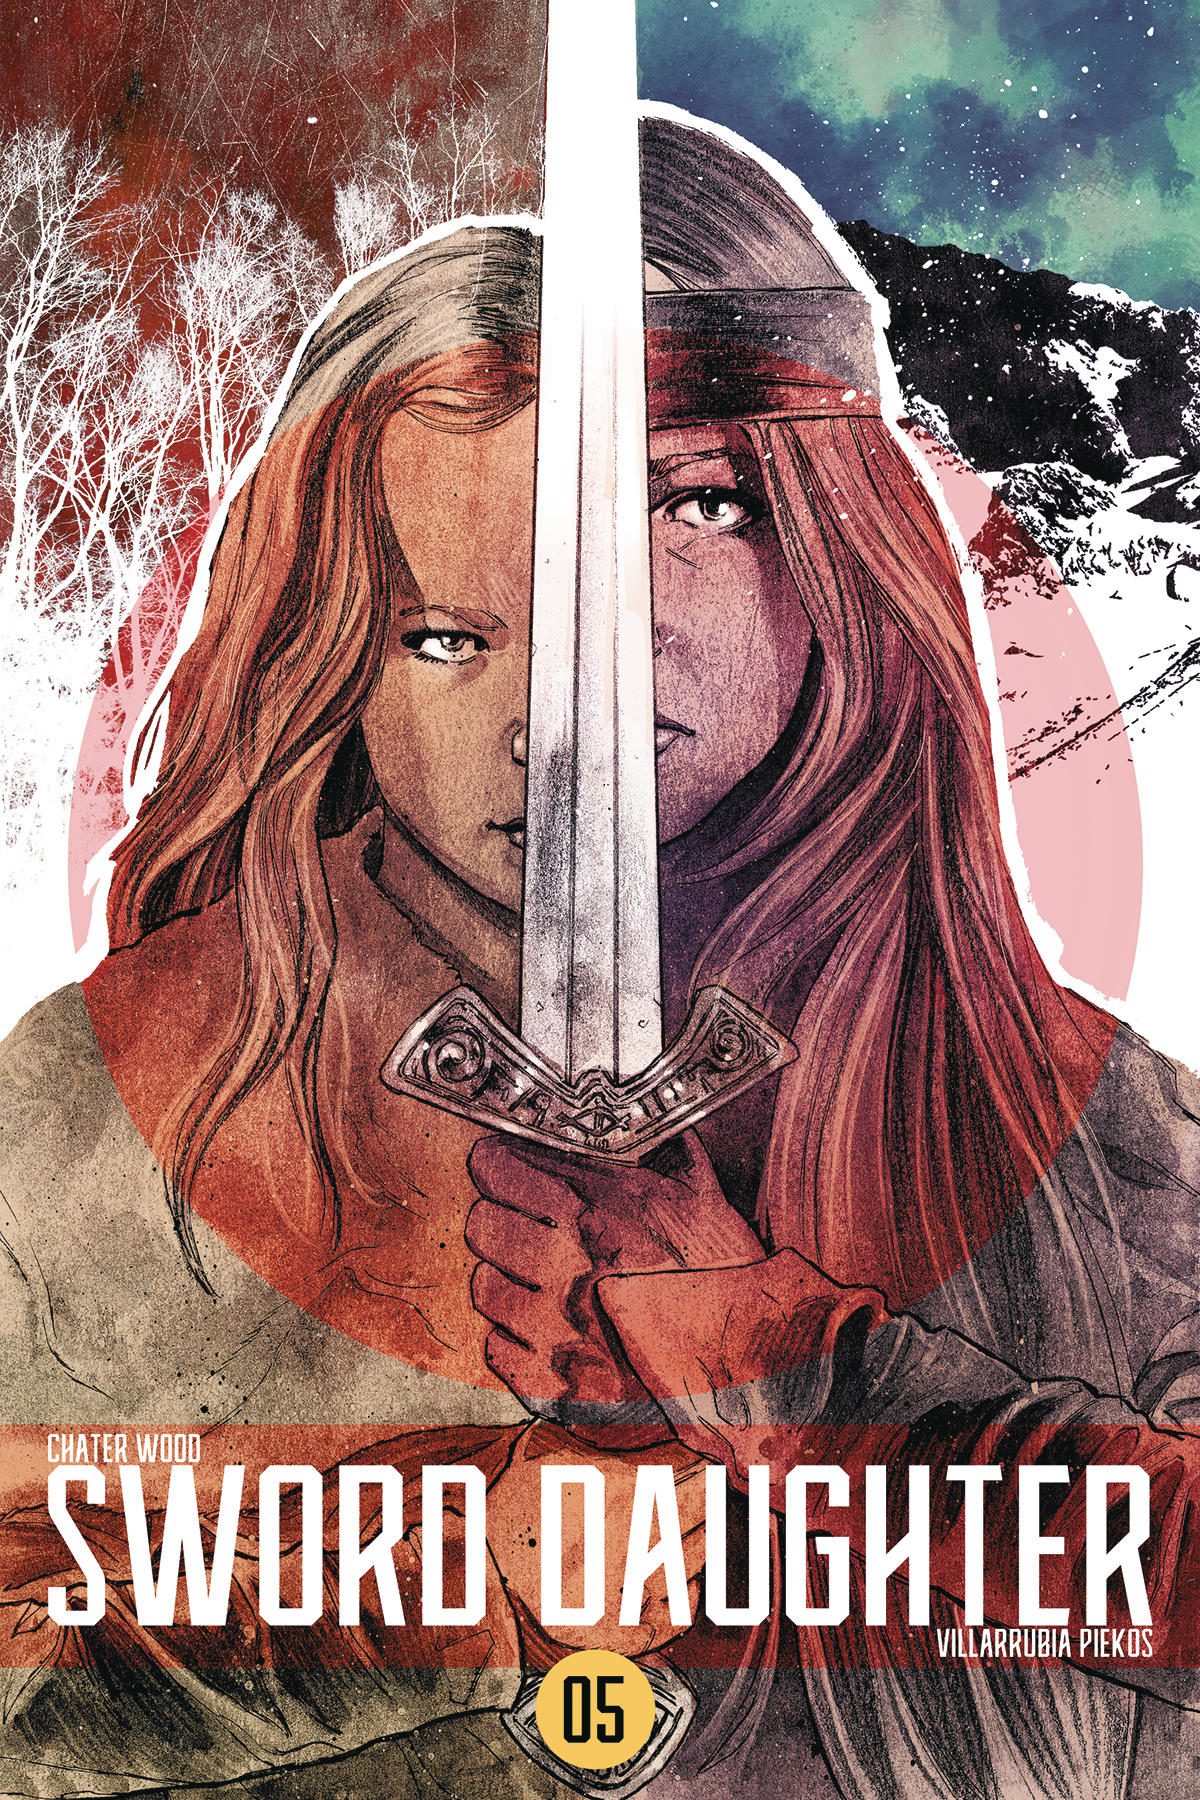 SWORD DAUGHTER #5 CVR B CHATER